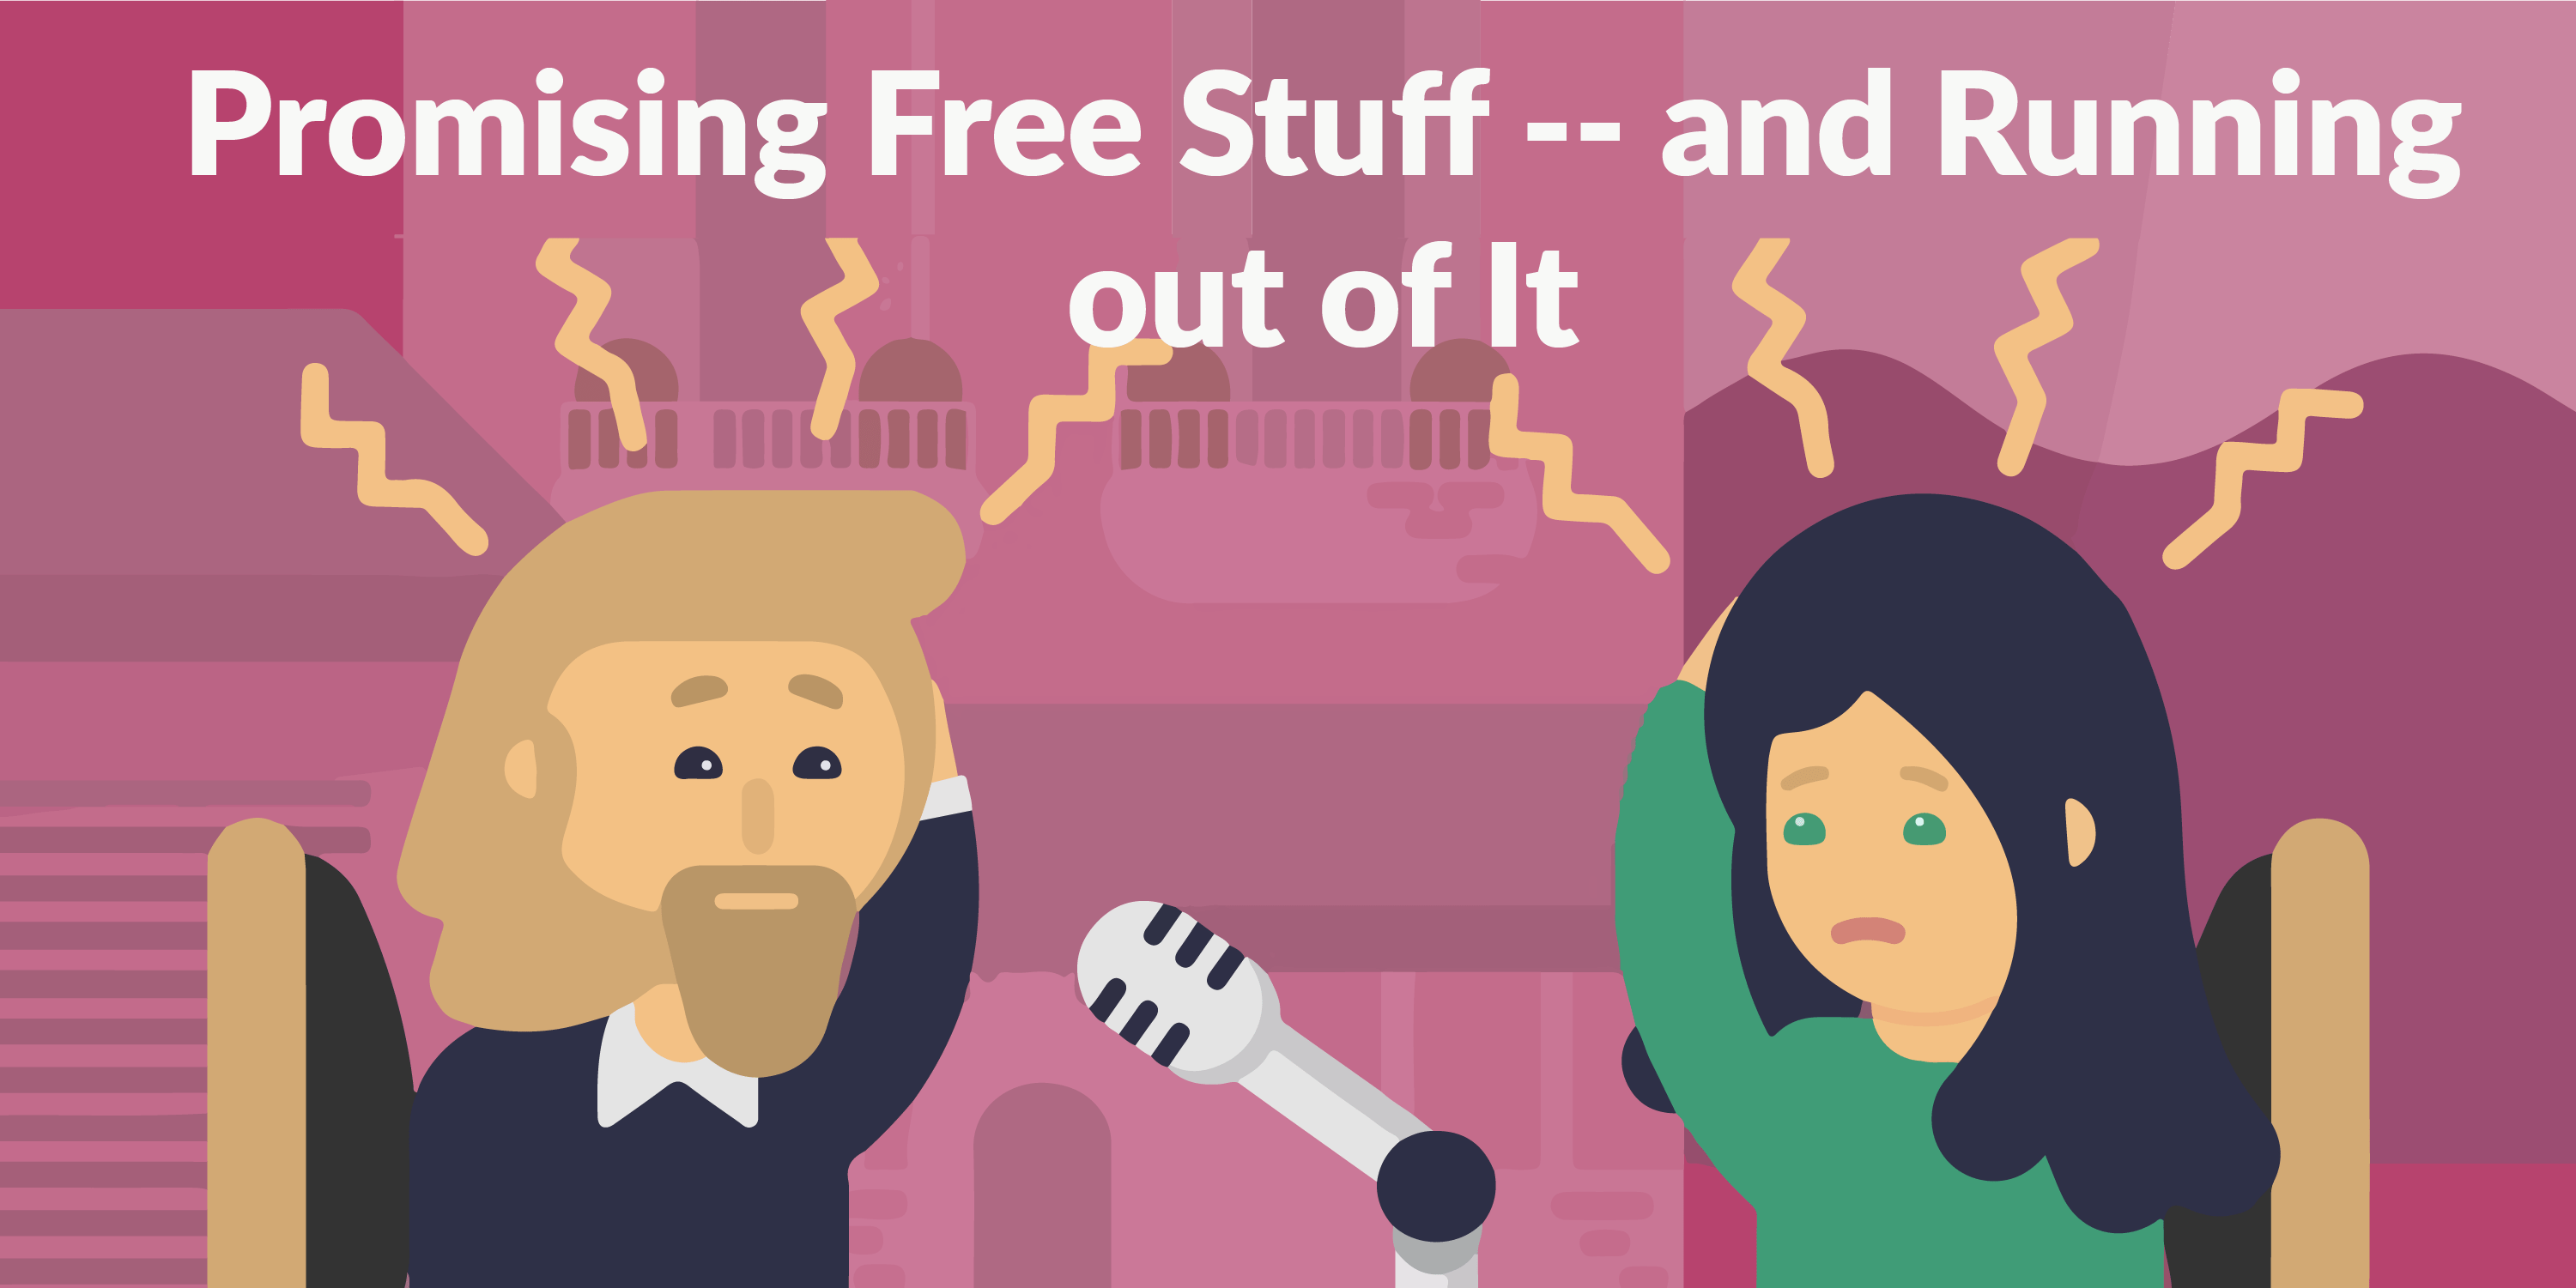 Promising Free Stuff -and Running out of It